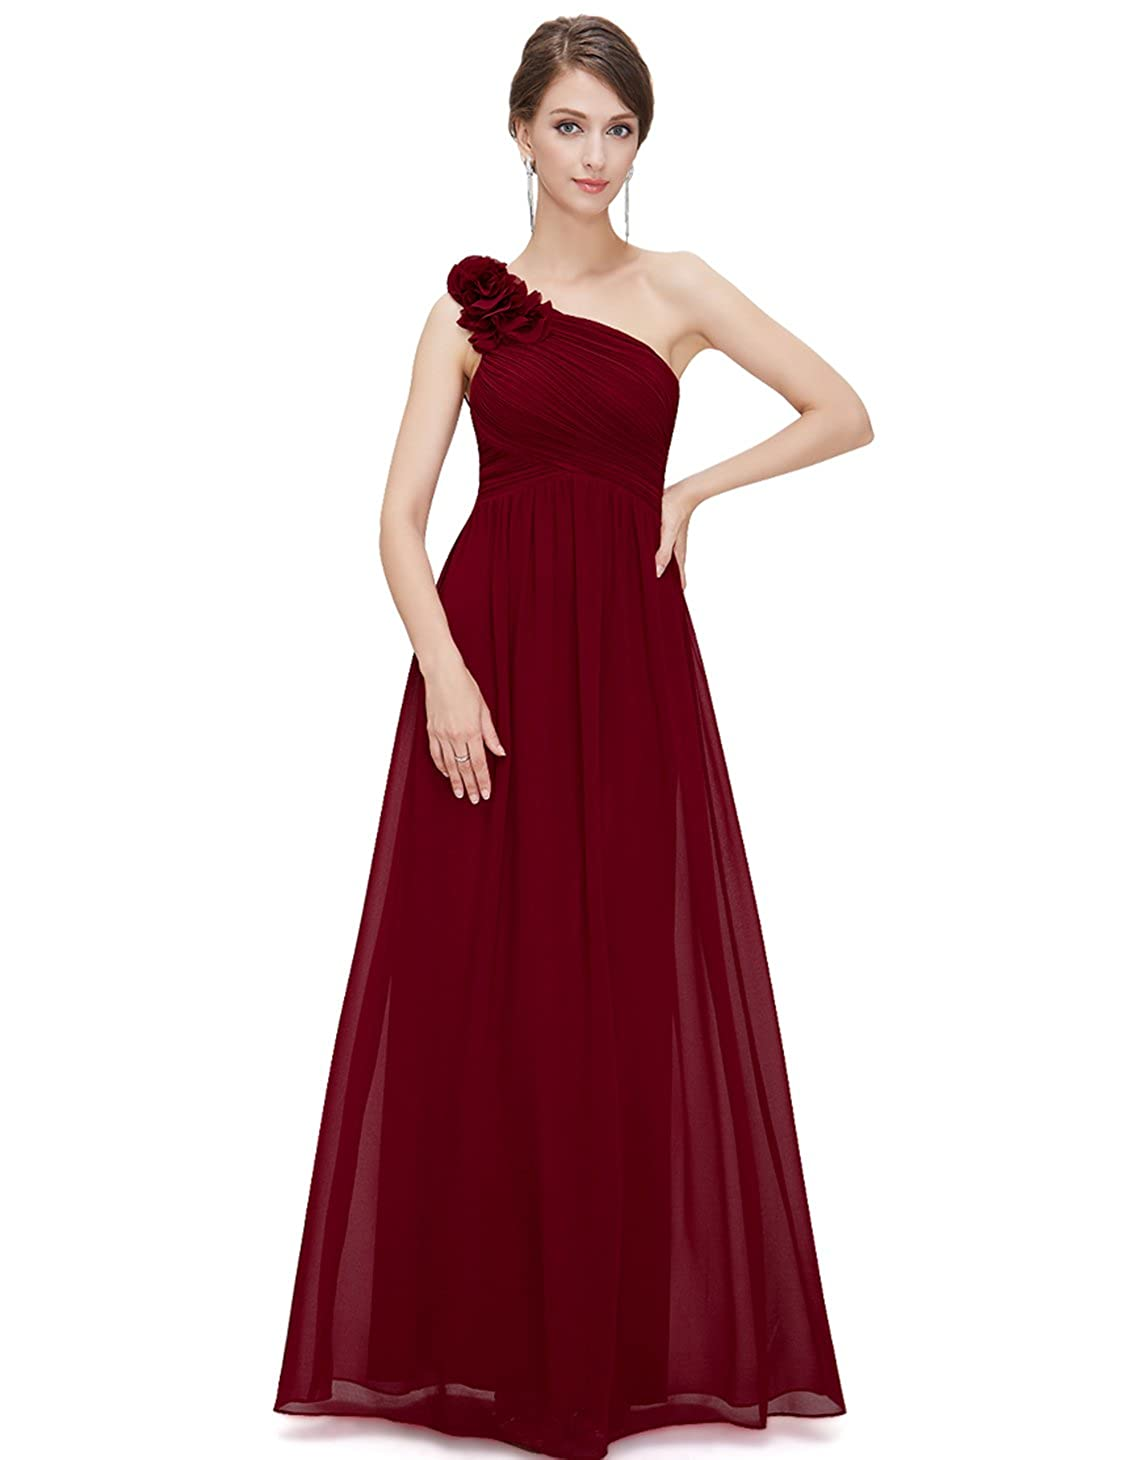 cc1a7dca73 Ever-Pretty Flower One Shoulder Long Bridesmaids Evening Party Dress 08237  at Amazon Women s Clothing store